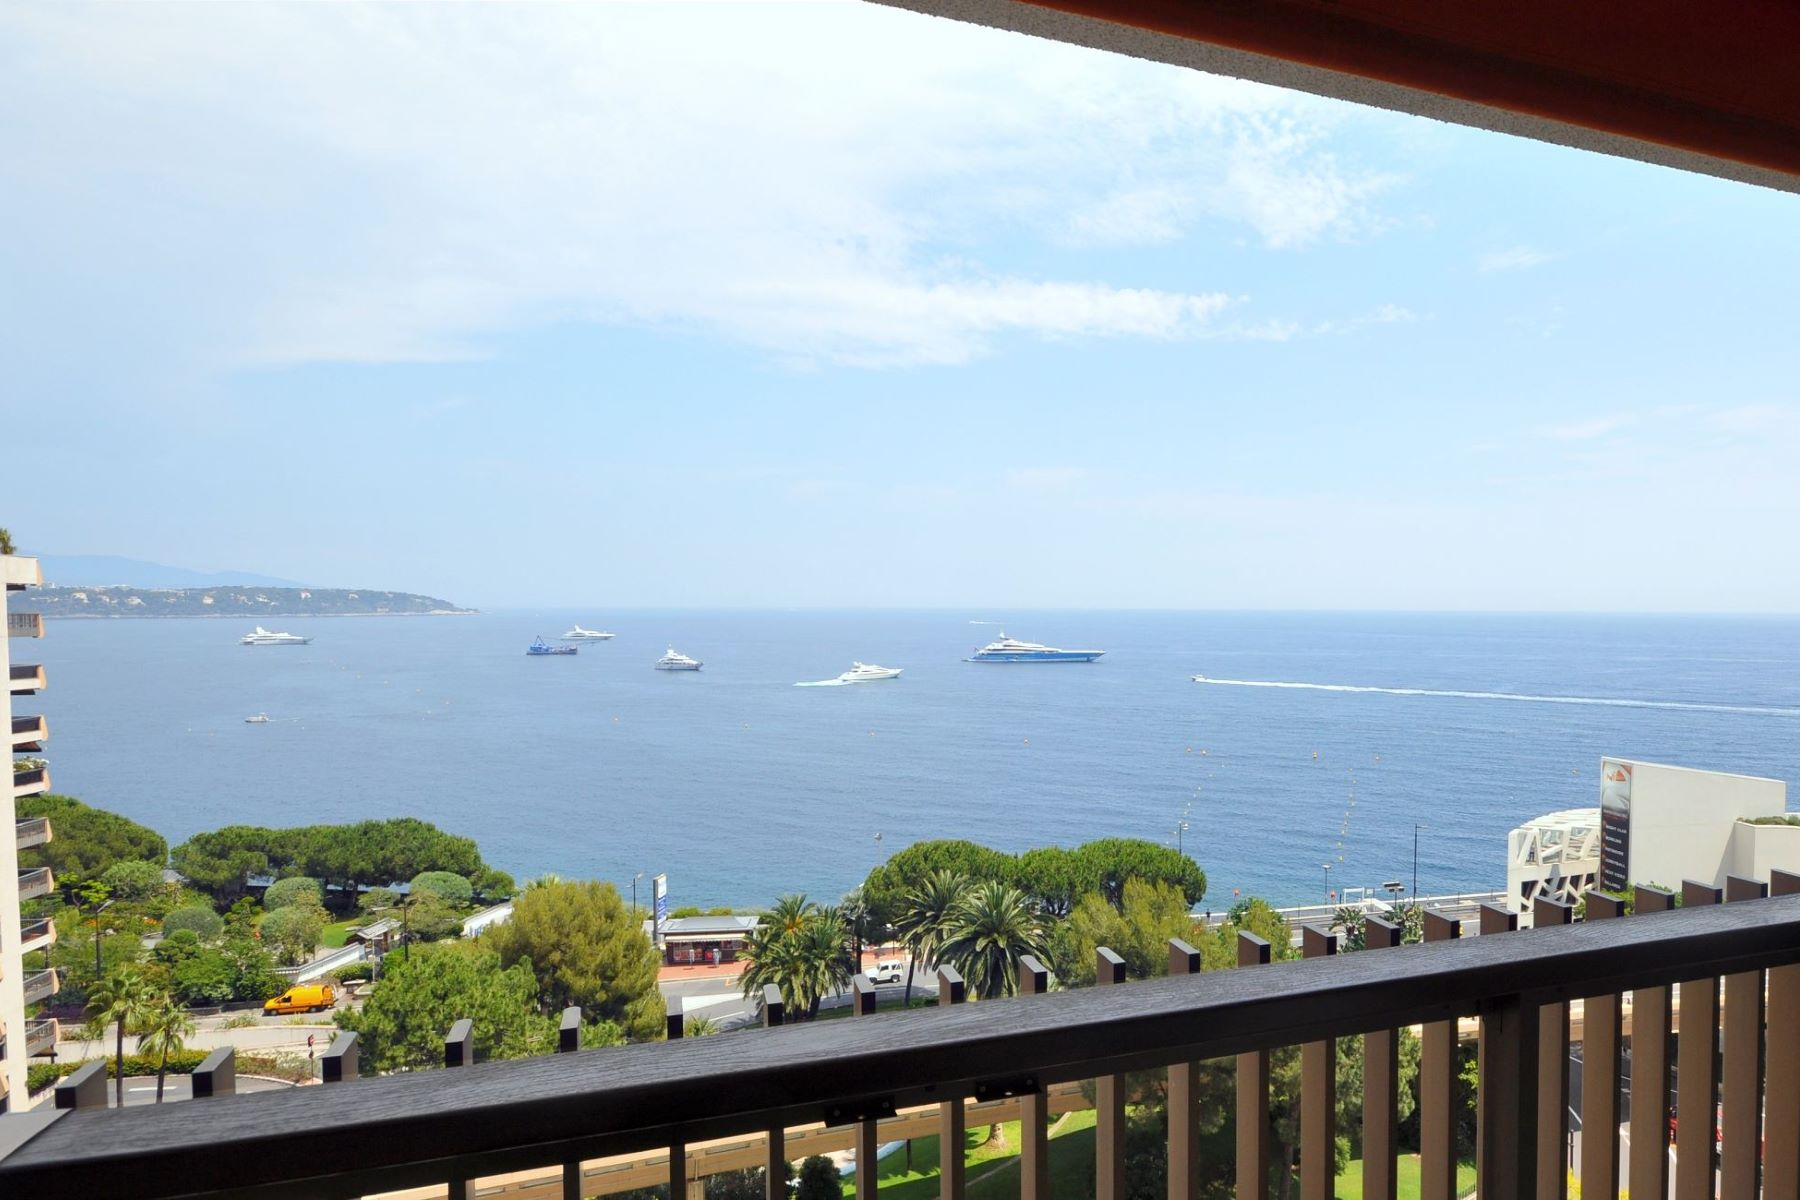 Apartamento por un Venta en Superb 2 bedroom flat, panoramic sea views. Le Mirabeau 2 Avenue des Citronniers Monaco, La Condamine, 98000 Mónaco